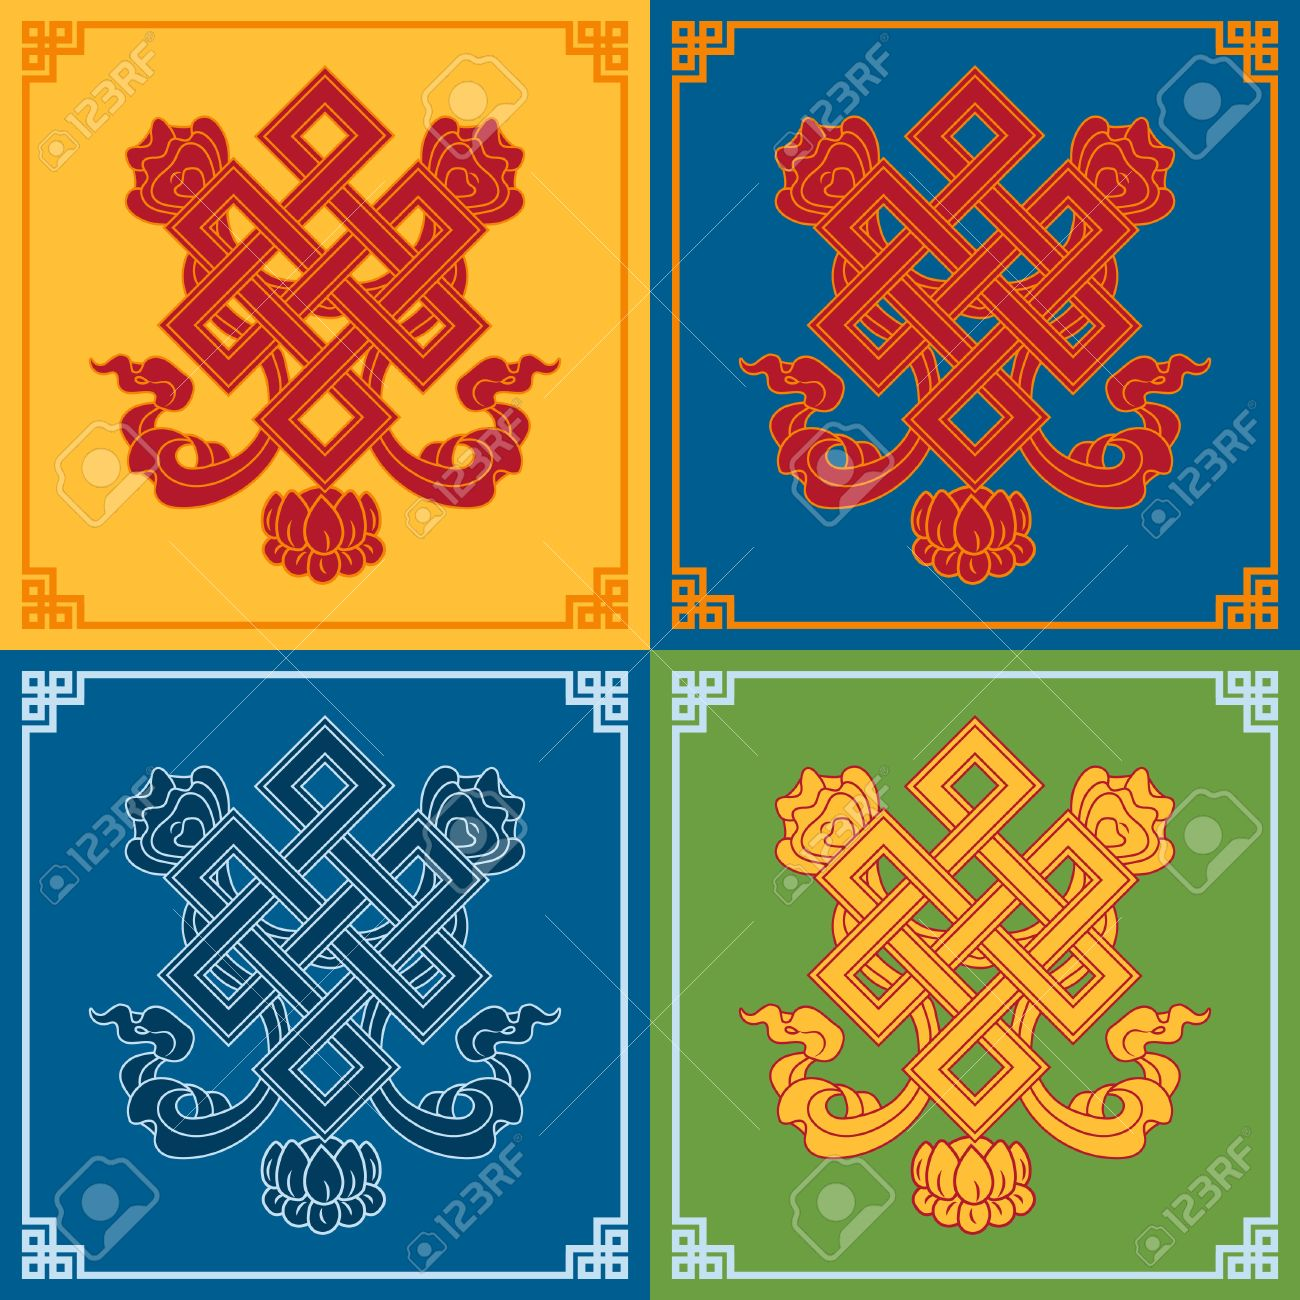 Color endless knot icons buddhist symbols symbols wisdom color endless knot icons buddhist symbols symbols wisdom enlightenment stock vector buycottarizona Image collections